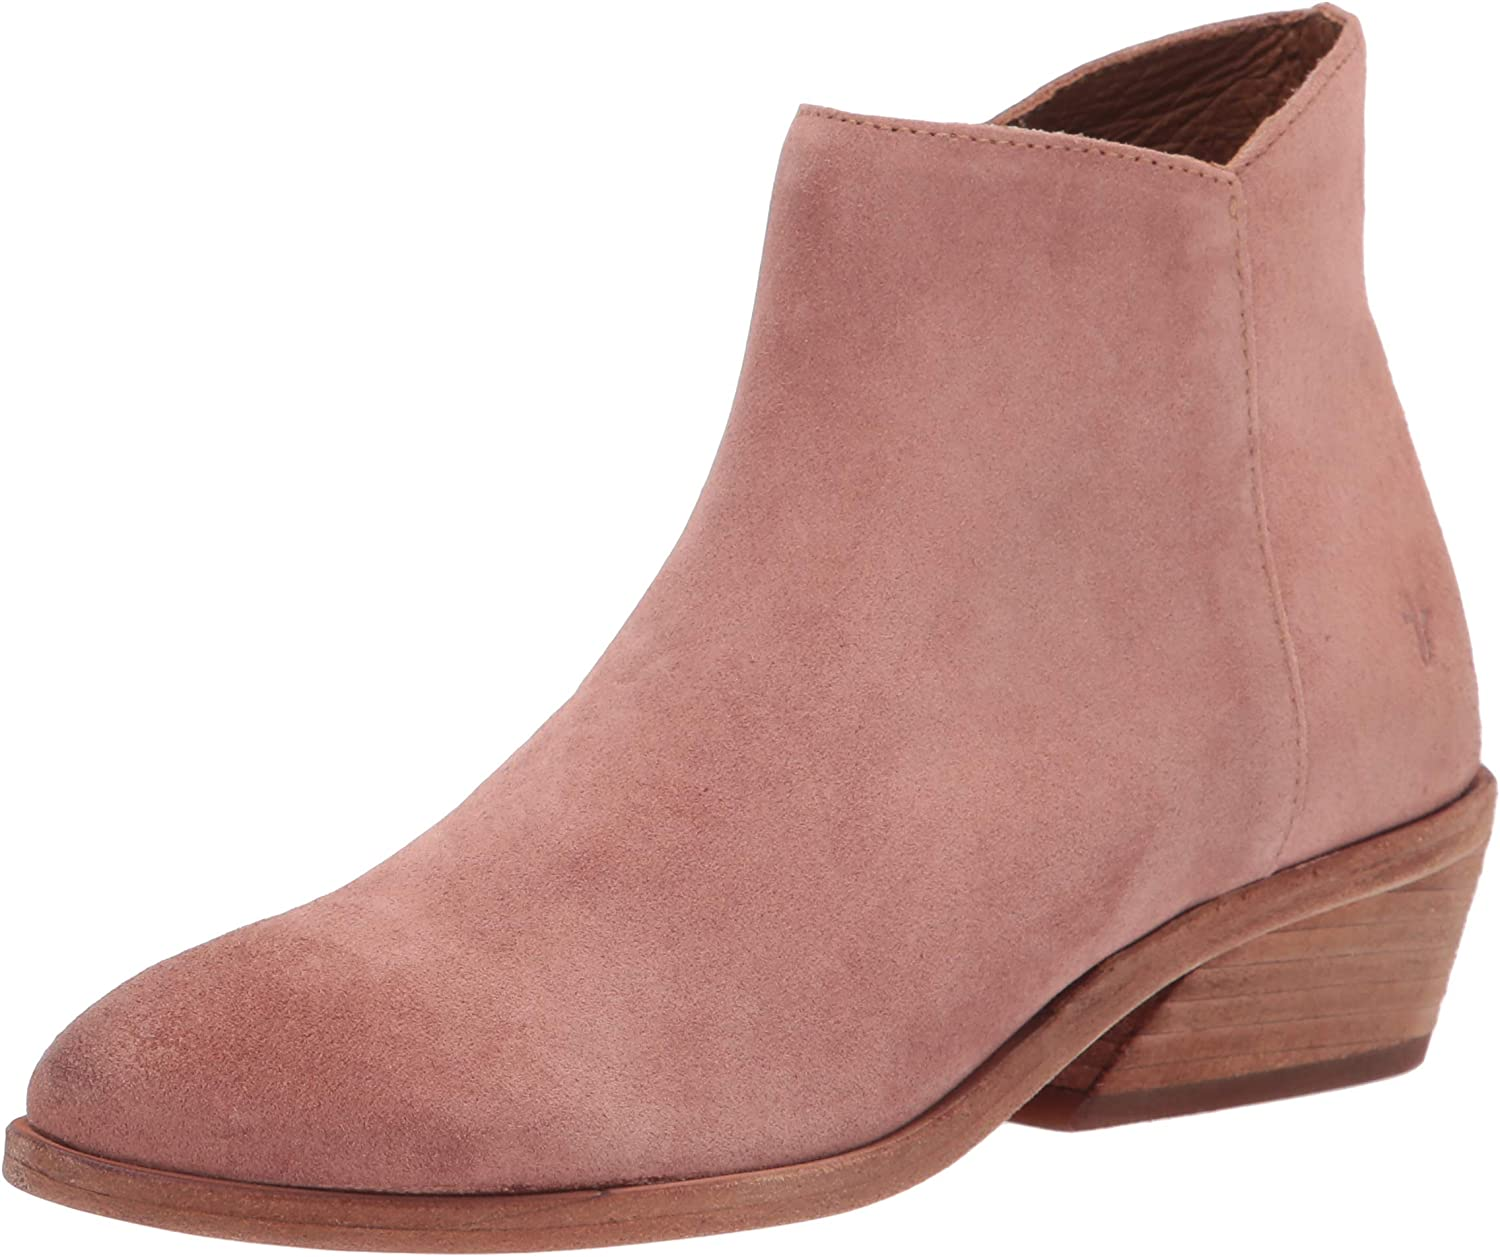 Frye Women's 70% OFF Outlet Farrah Inside Special price Boot Ankle Zip